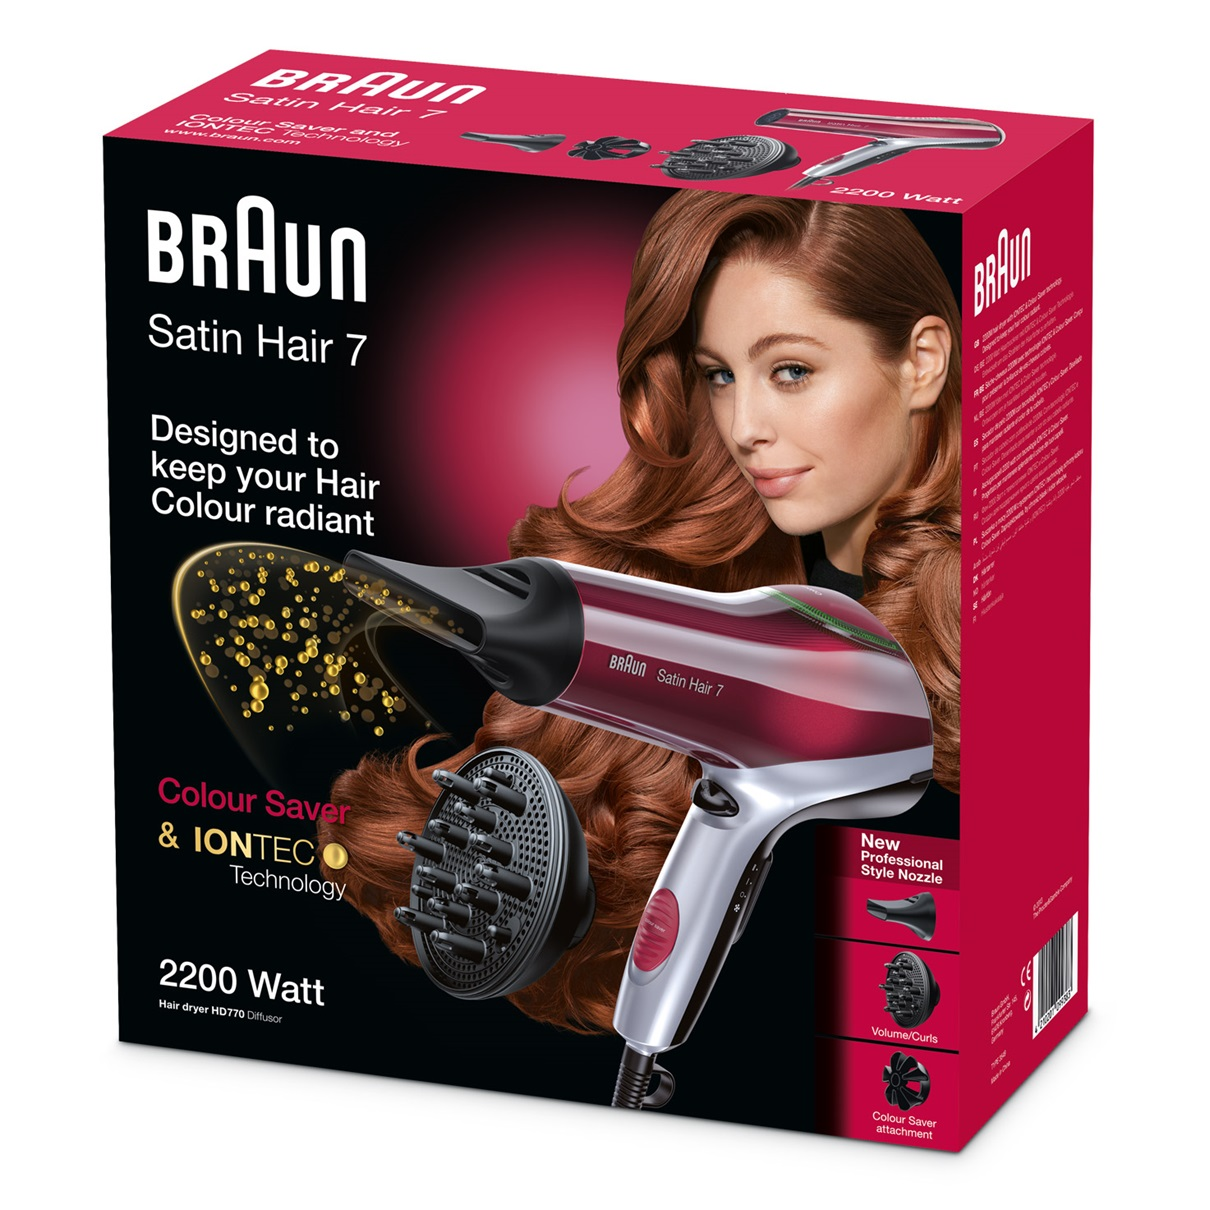 Braun Satin Hair 7 HD770 with Colour Saver technology and diffuser - packaging